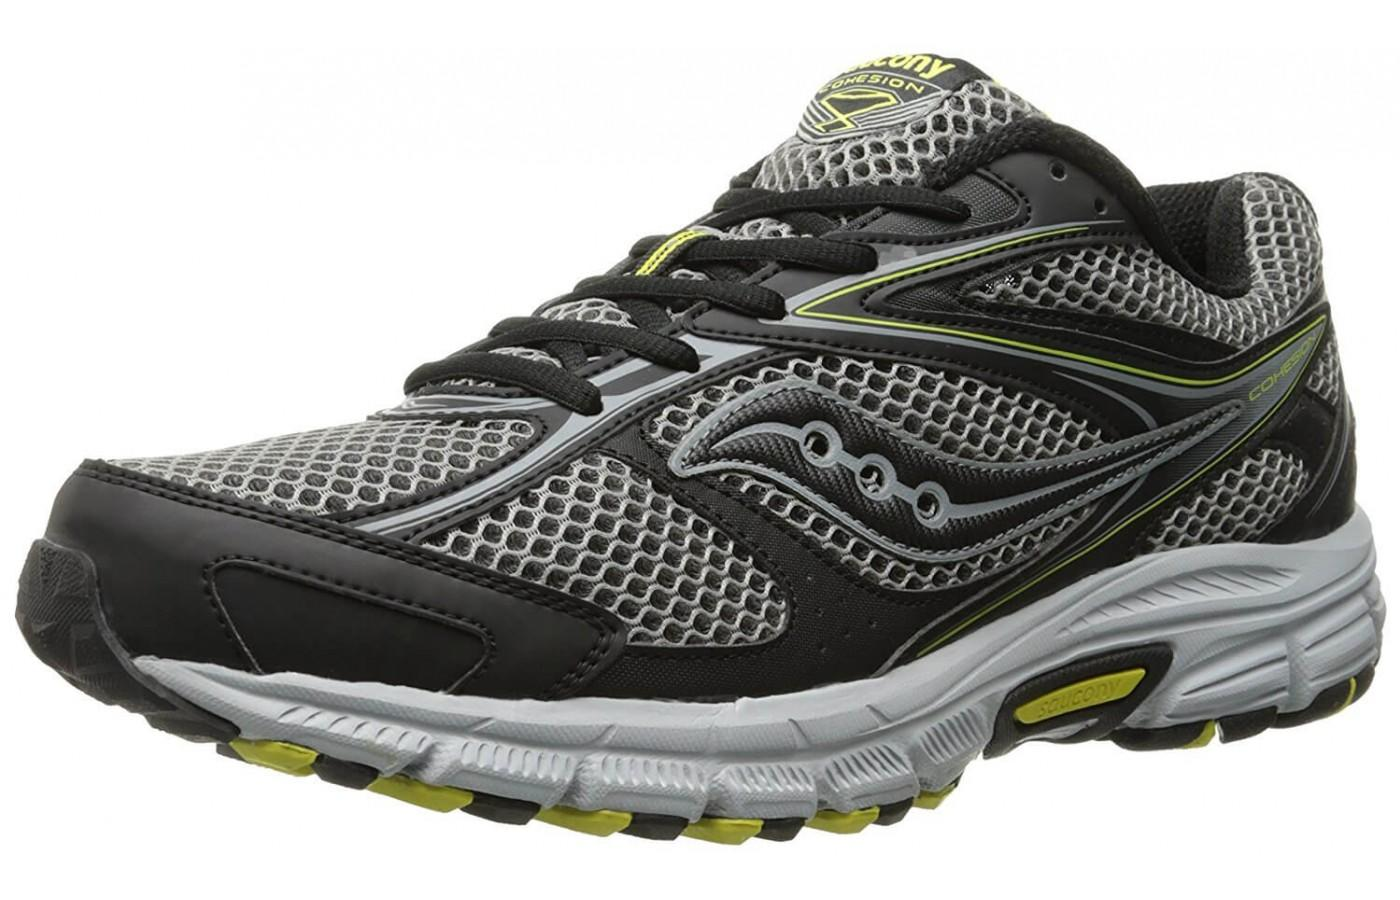 the Saucony Cohesion TR 8 shown from the front/side